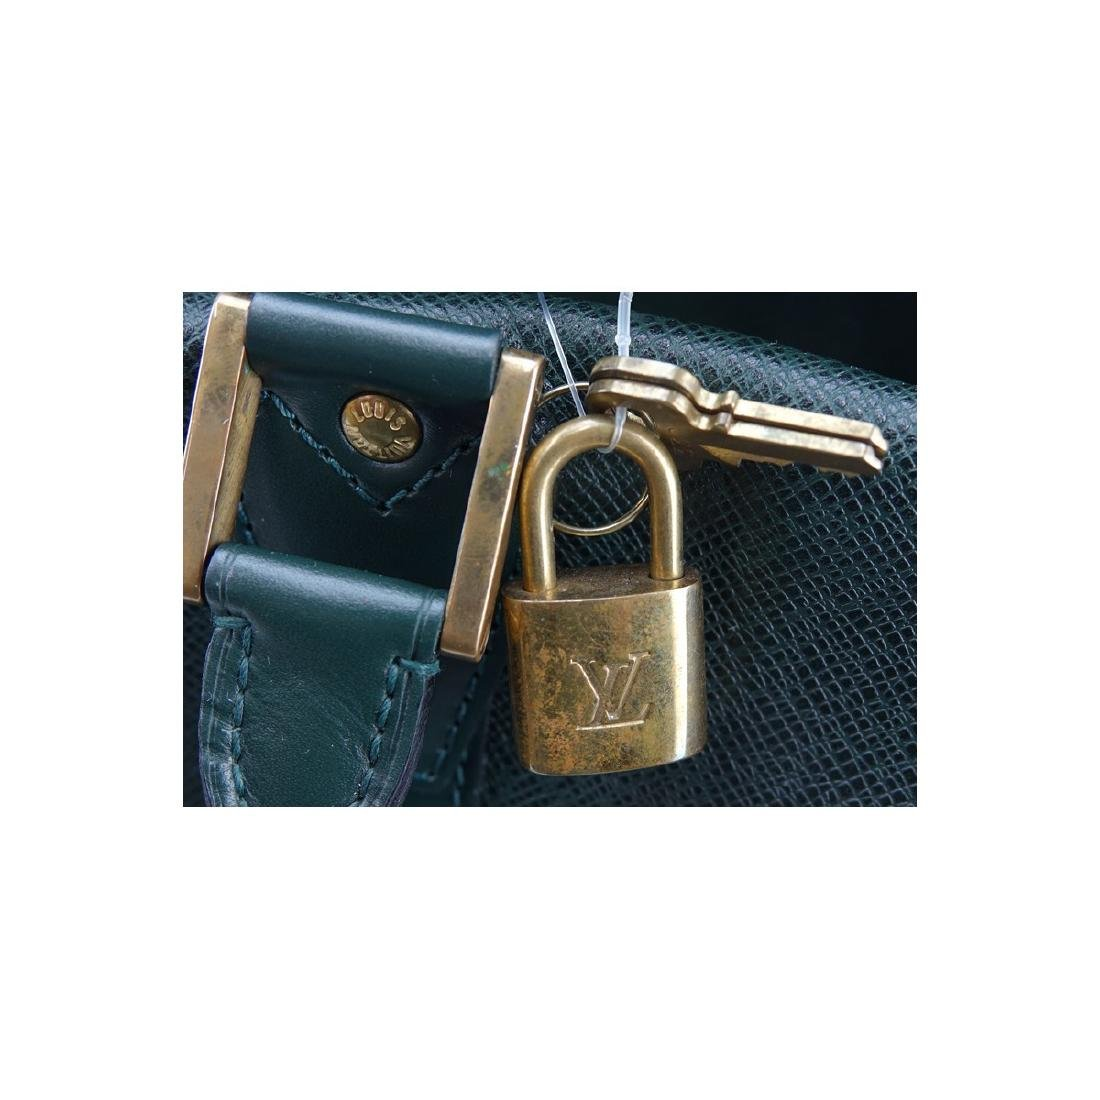 Louis Vuitton Dark Green Tiaga Leather Kendall PM - 8